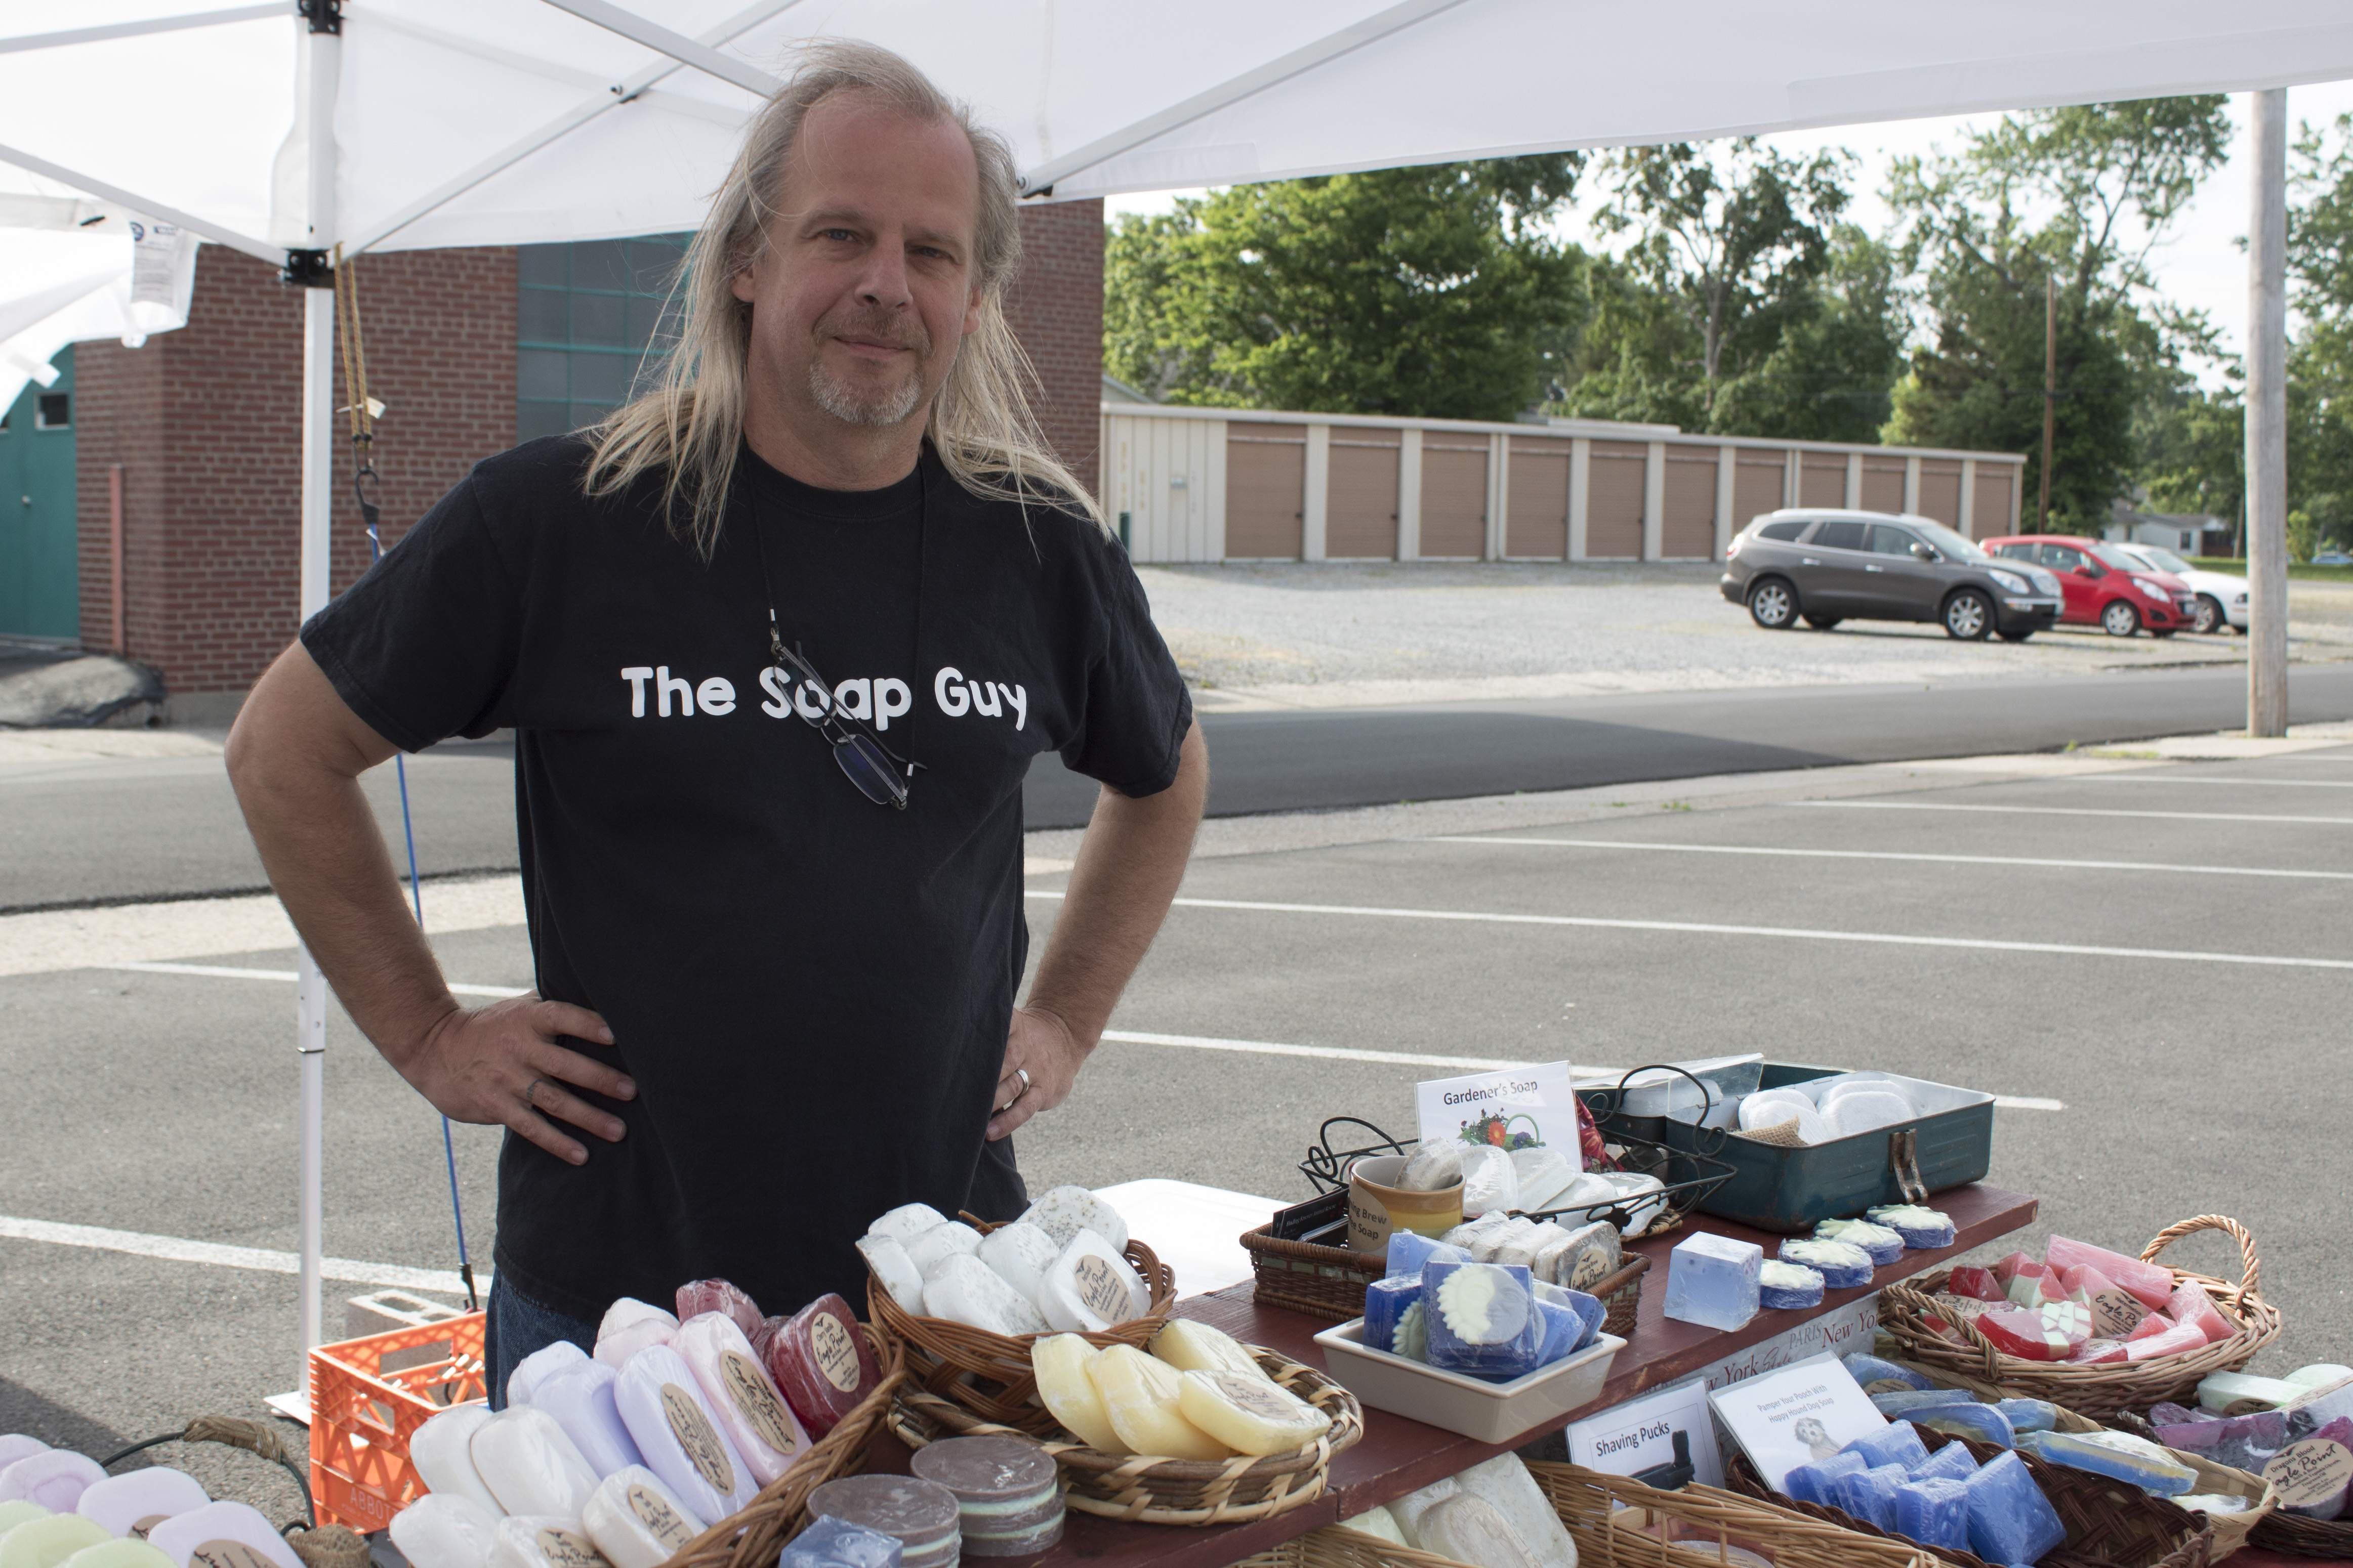 Dan Druszkowski fights the wind Wednesday morning at the Farmer's Market held in the Marion Senior Citizen's Center parking lot. Dan owns Eagle Point Bath and Body in Goreville. Eagle Point offers handmade soap, lotions, salves, and other scented products.